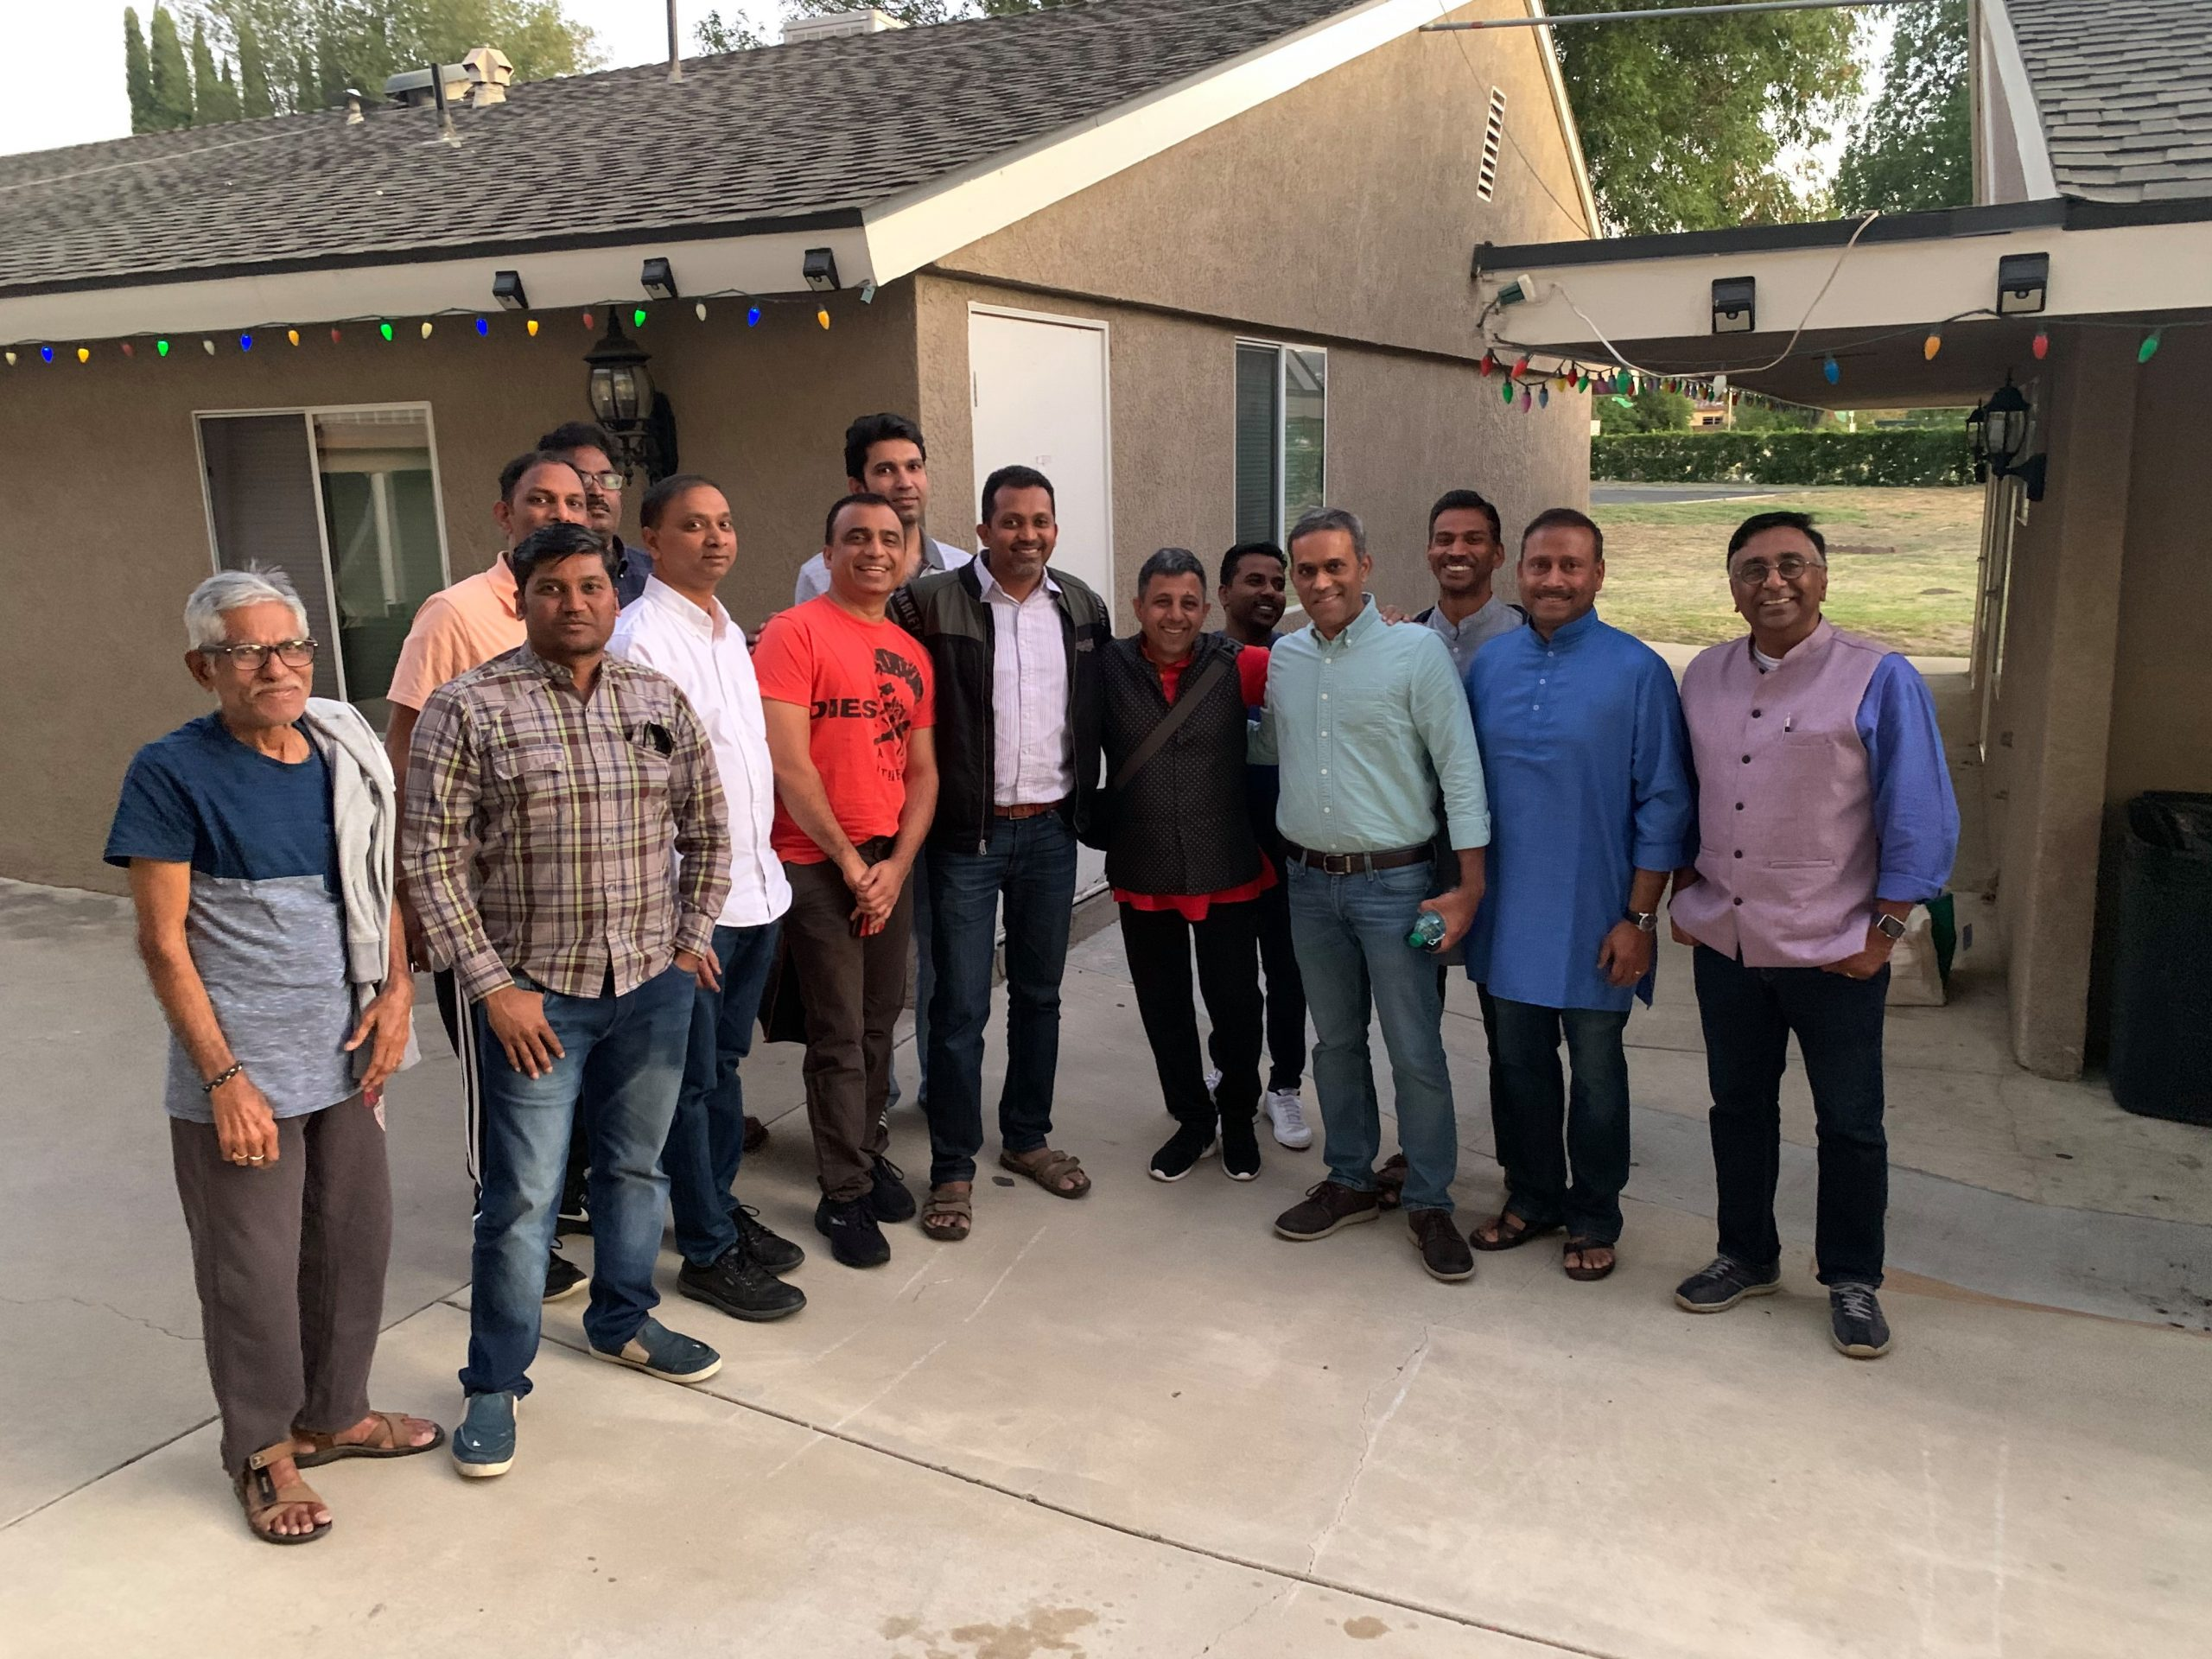 Anuj Dhar at Simi Valley